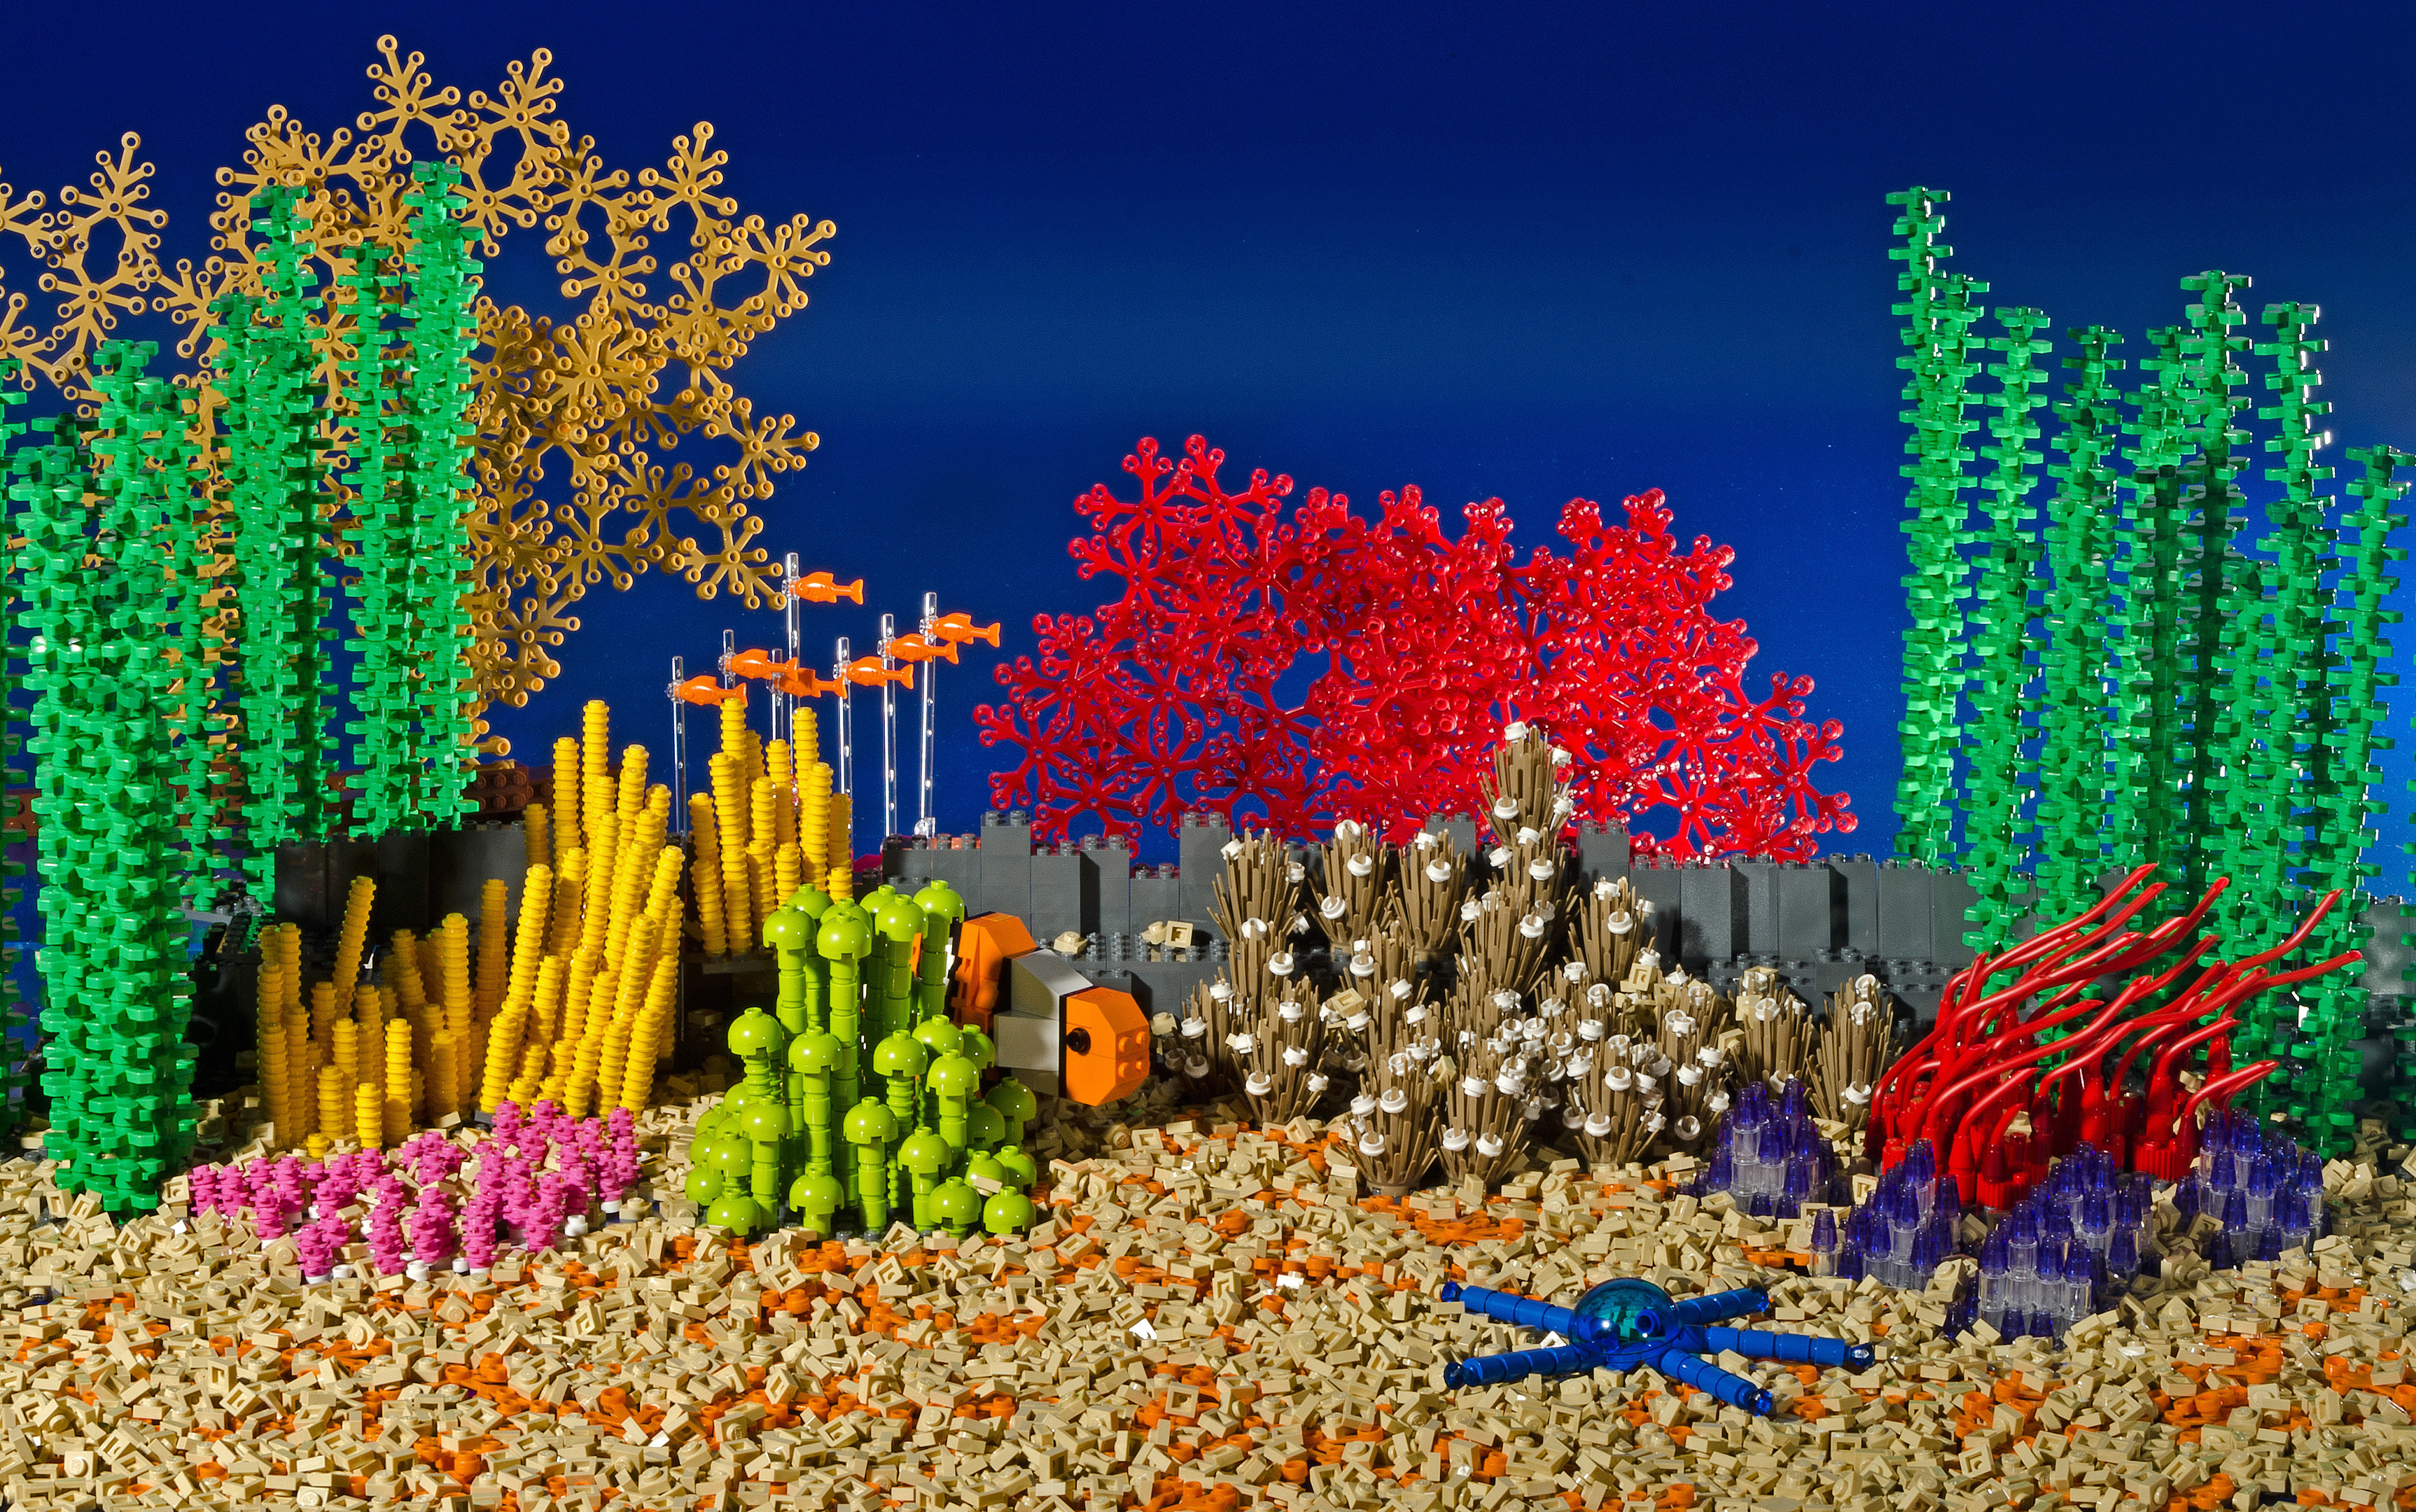 Great Barrier Reef model